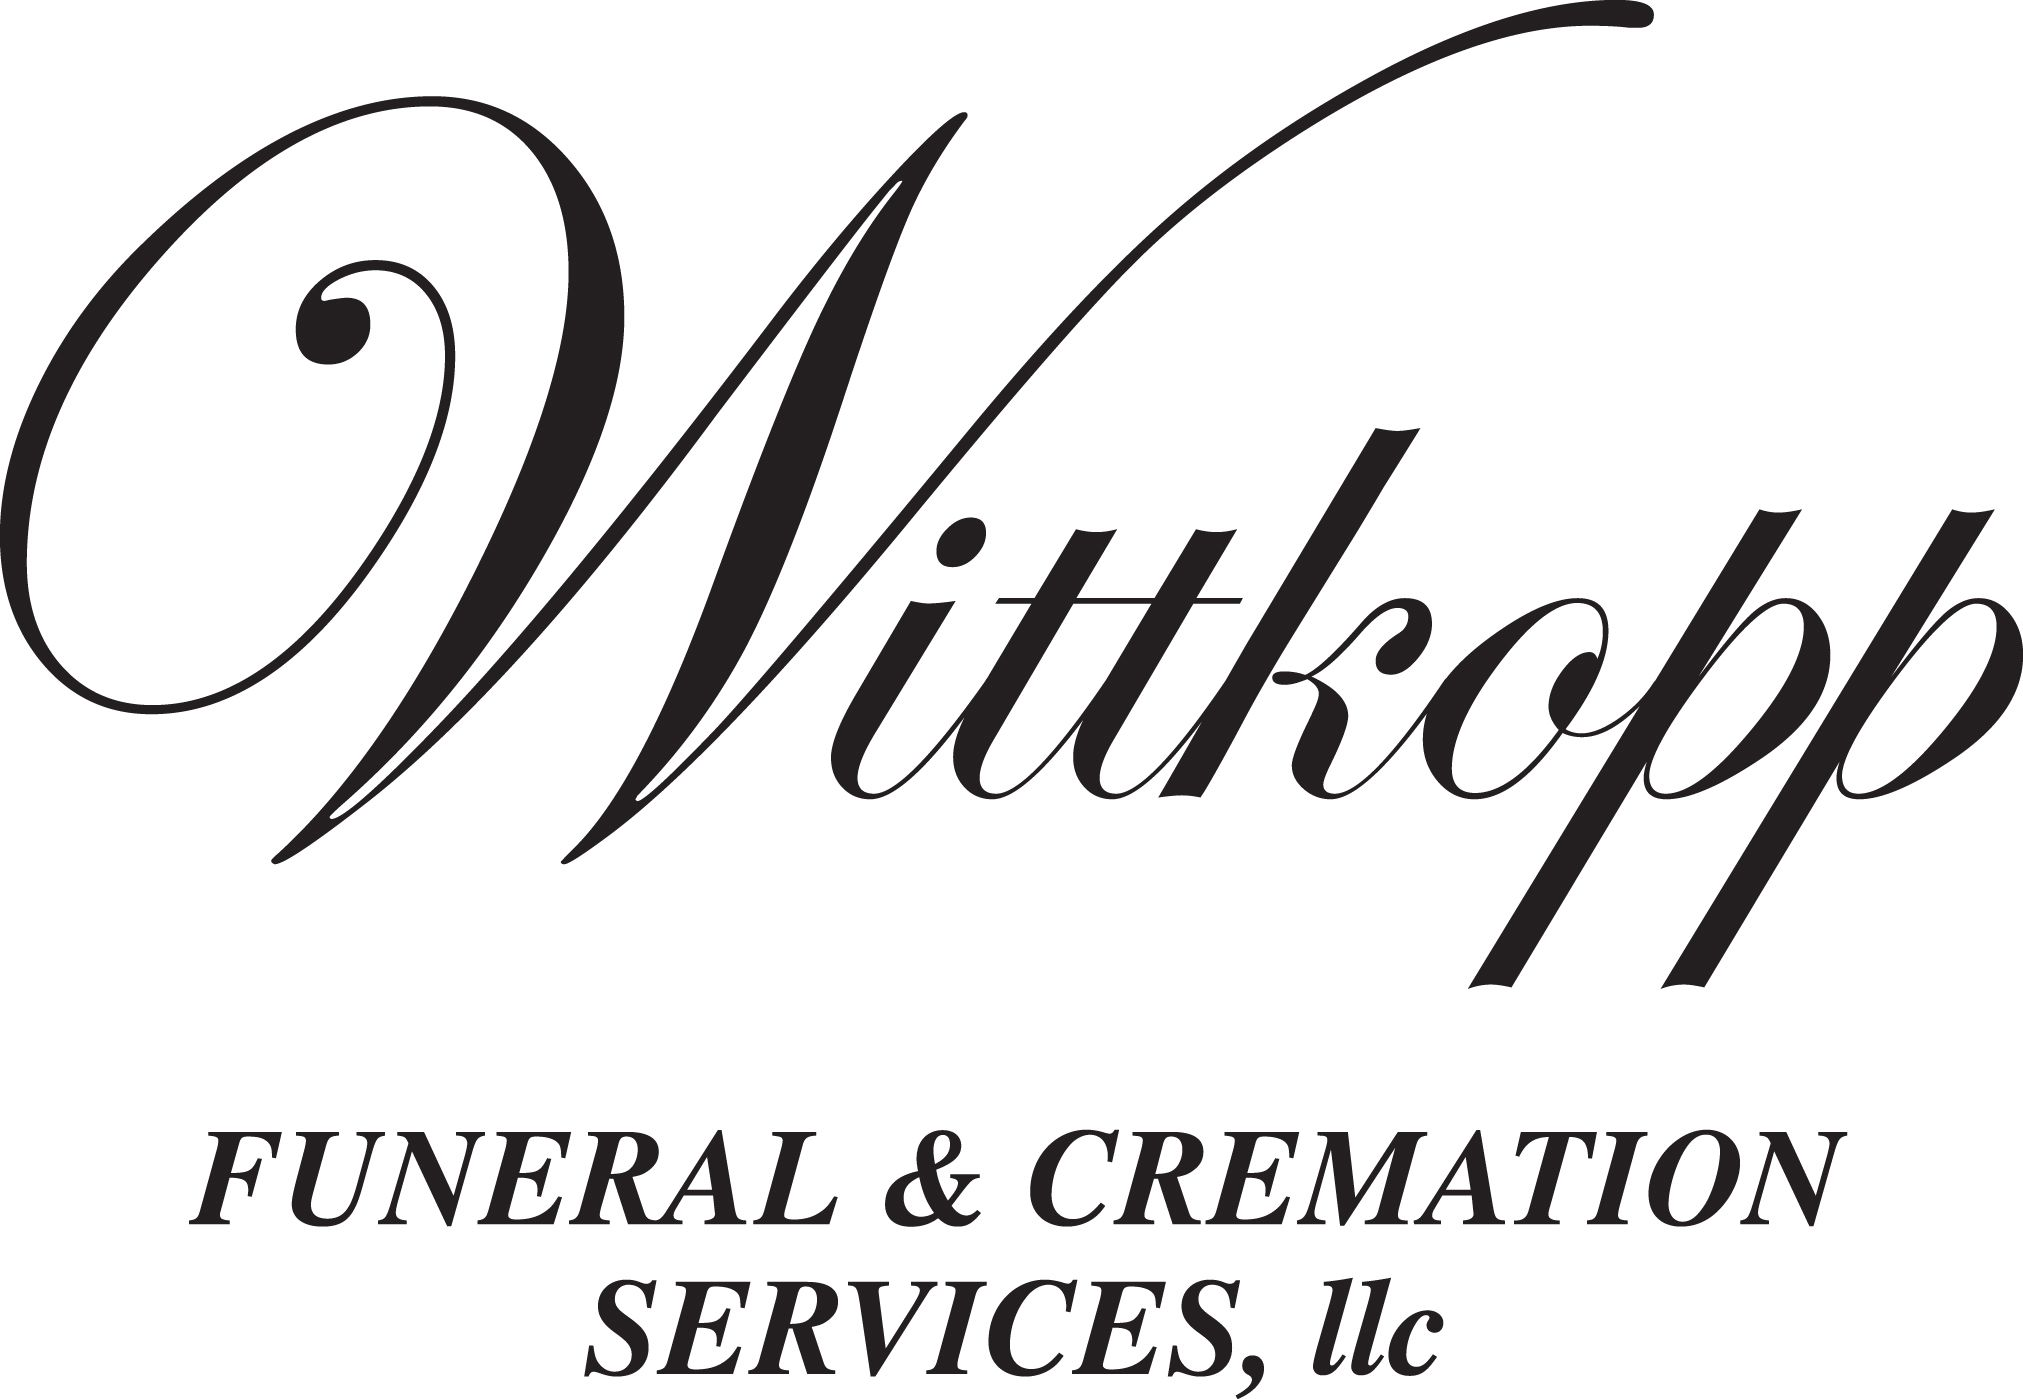 Wittkopp Funeral & Cremation Services